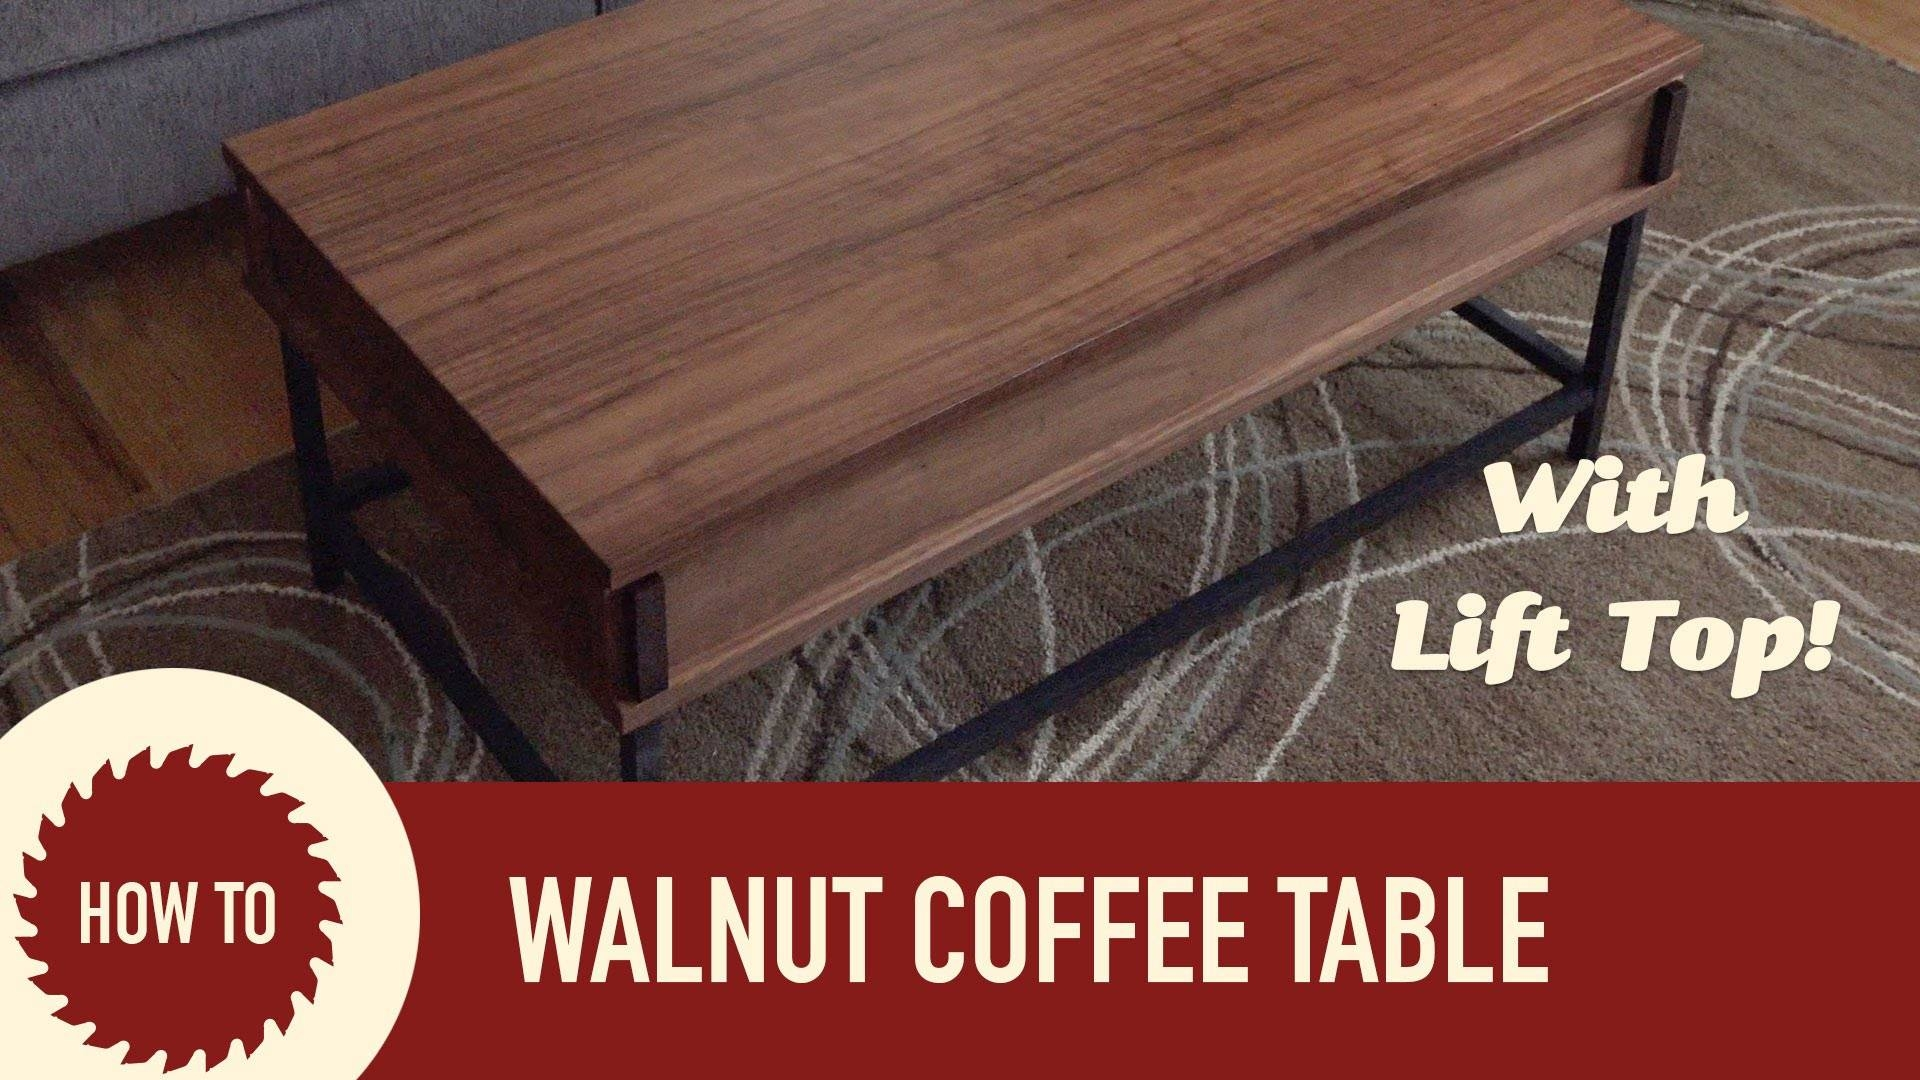 Easy To Make Coffee Table With Lift Up Top   Youtube Pertaining To Coffee Tables With Lift Up Top (Photo 28 of 30)